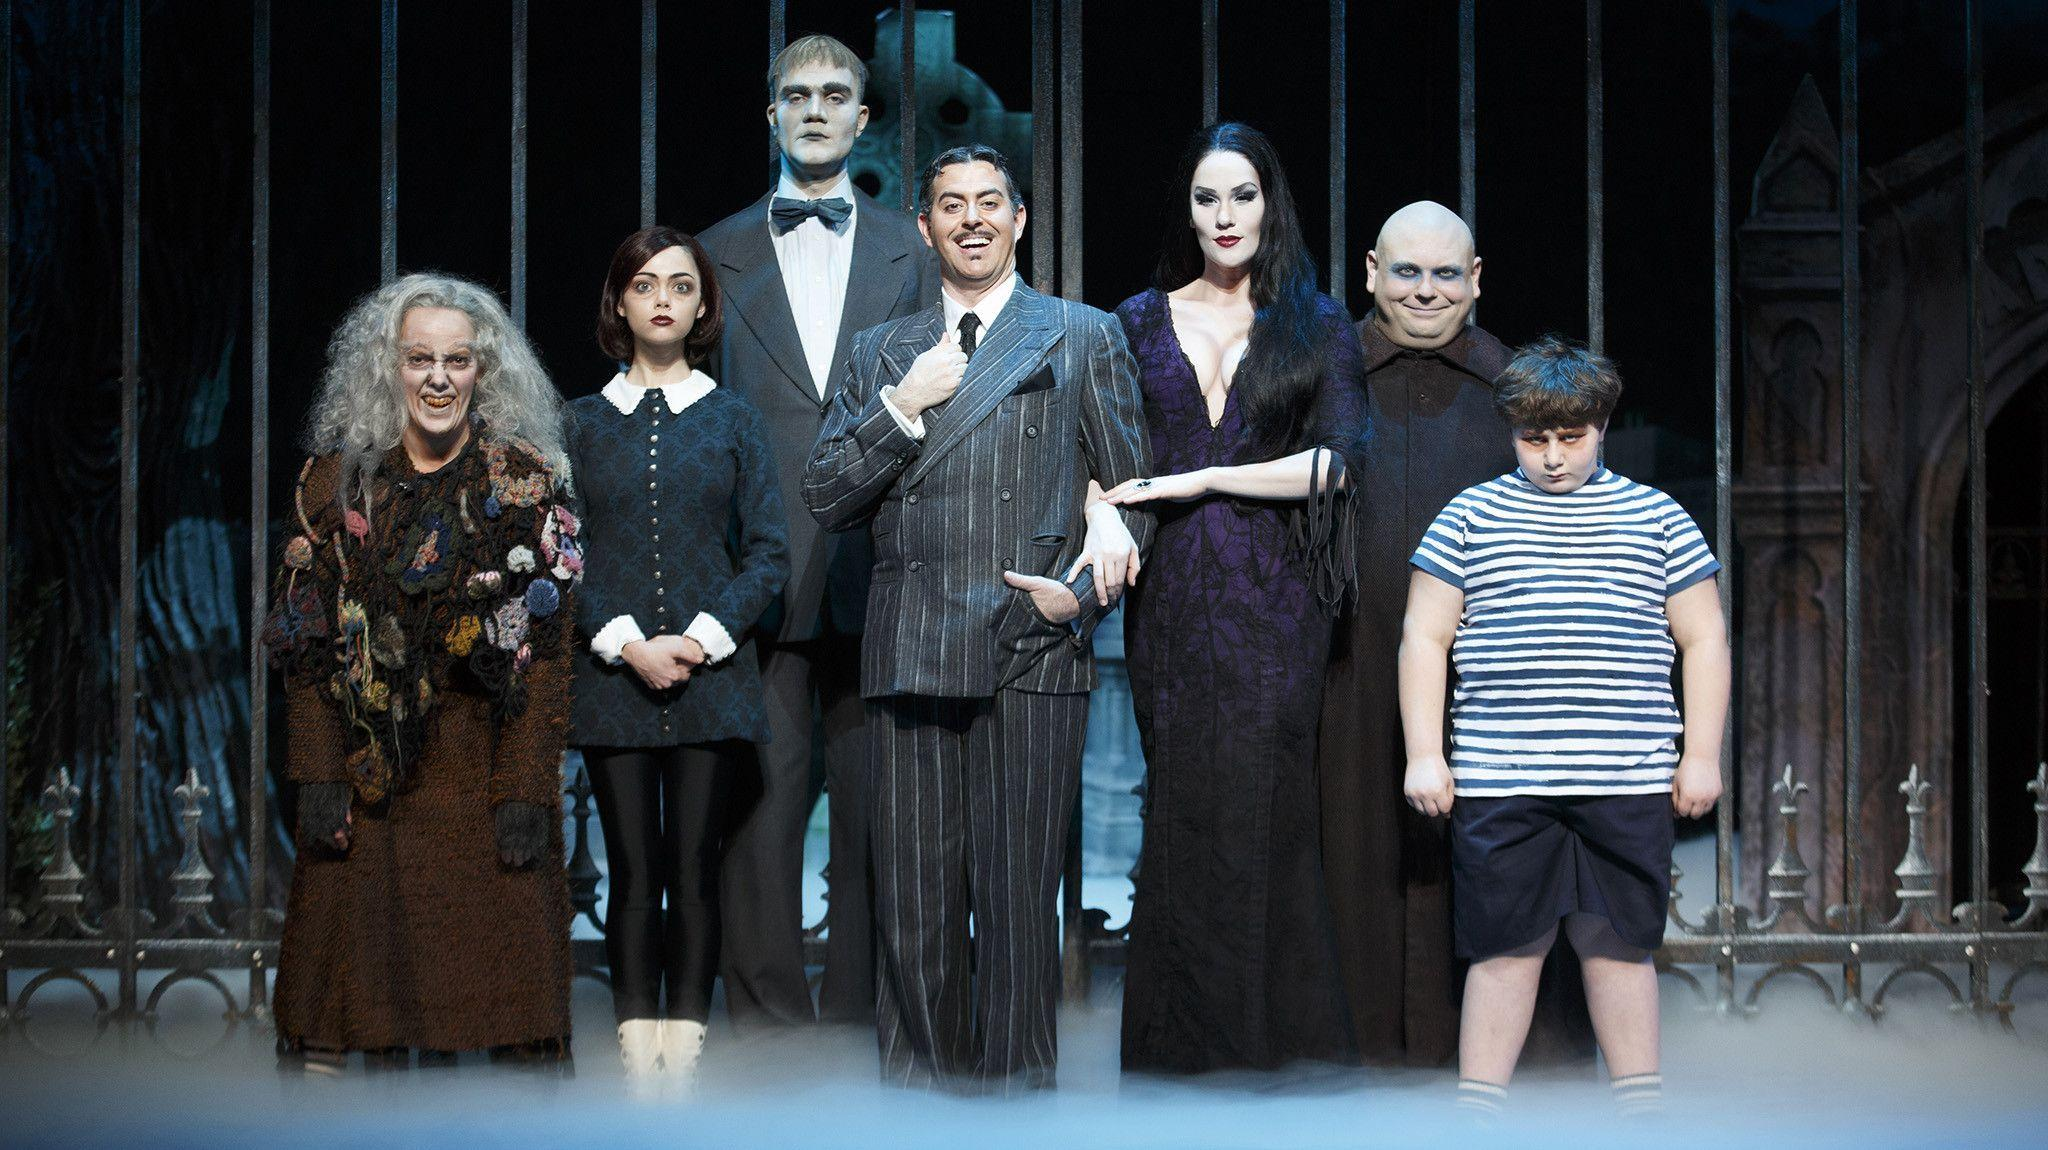 Addams Family Wallpapers - Wallpaper Cave